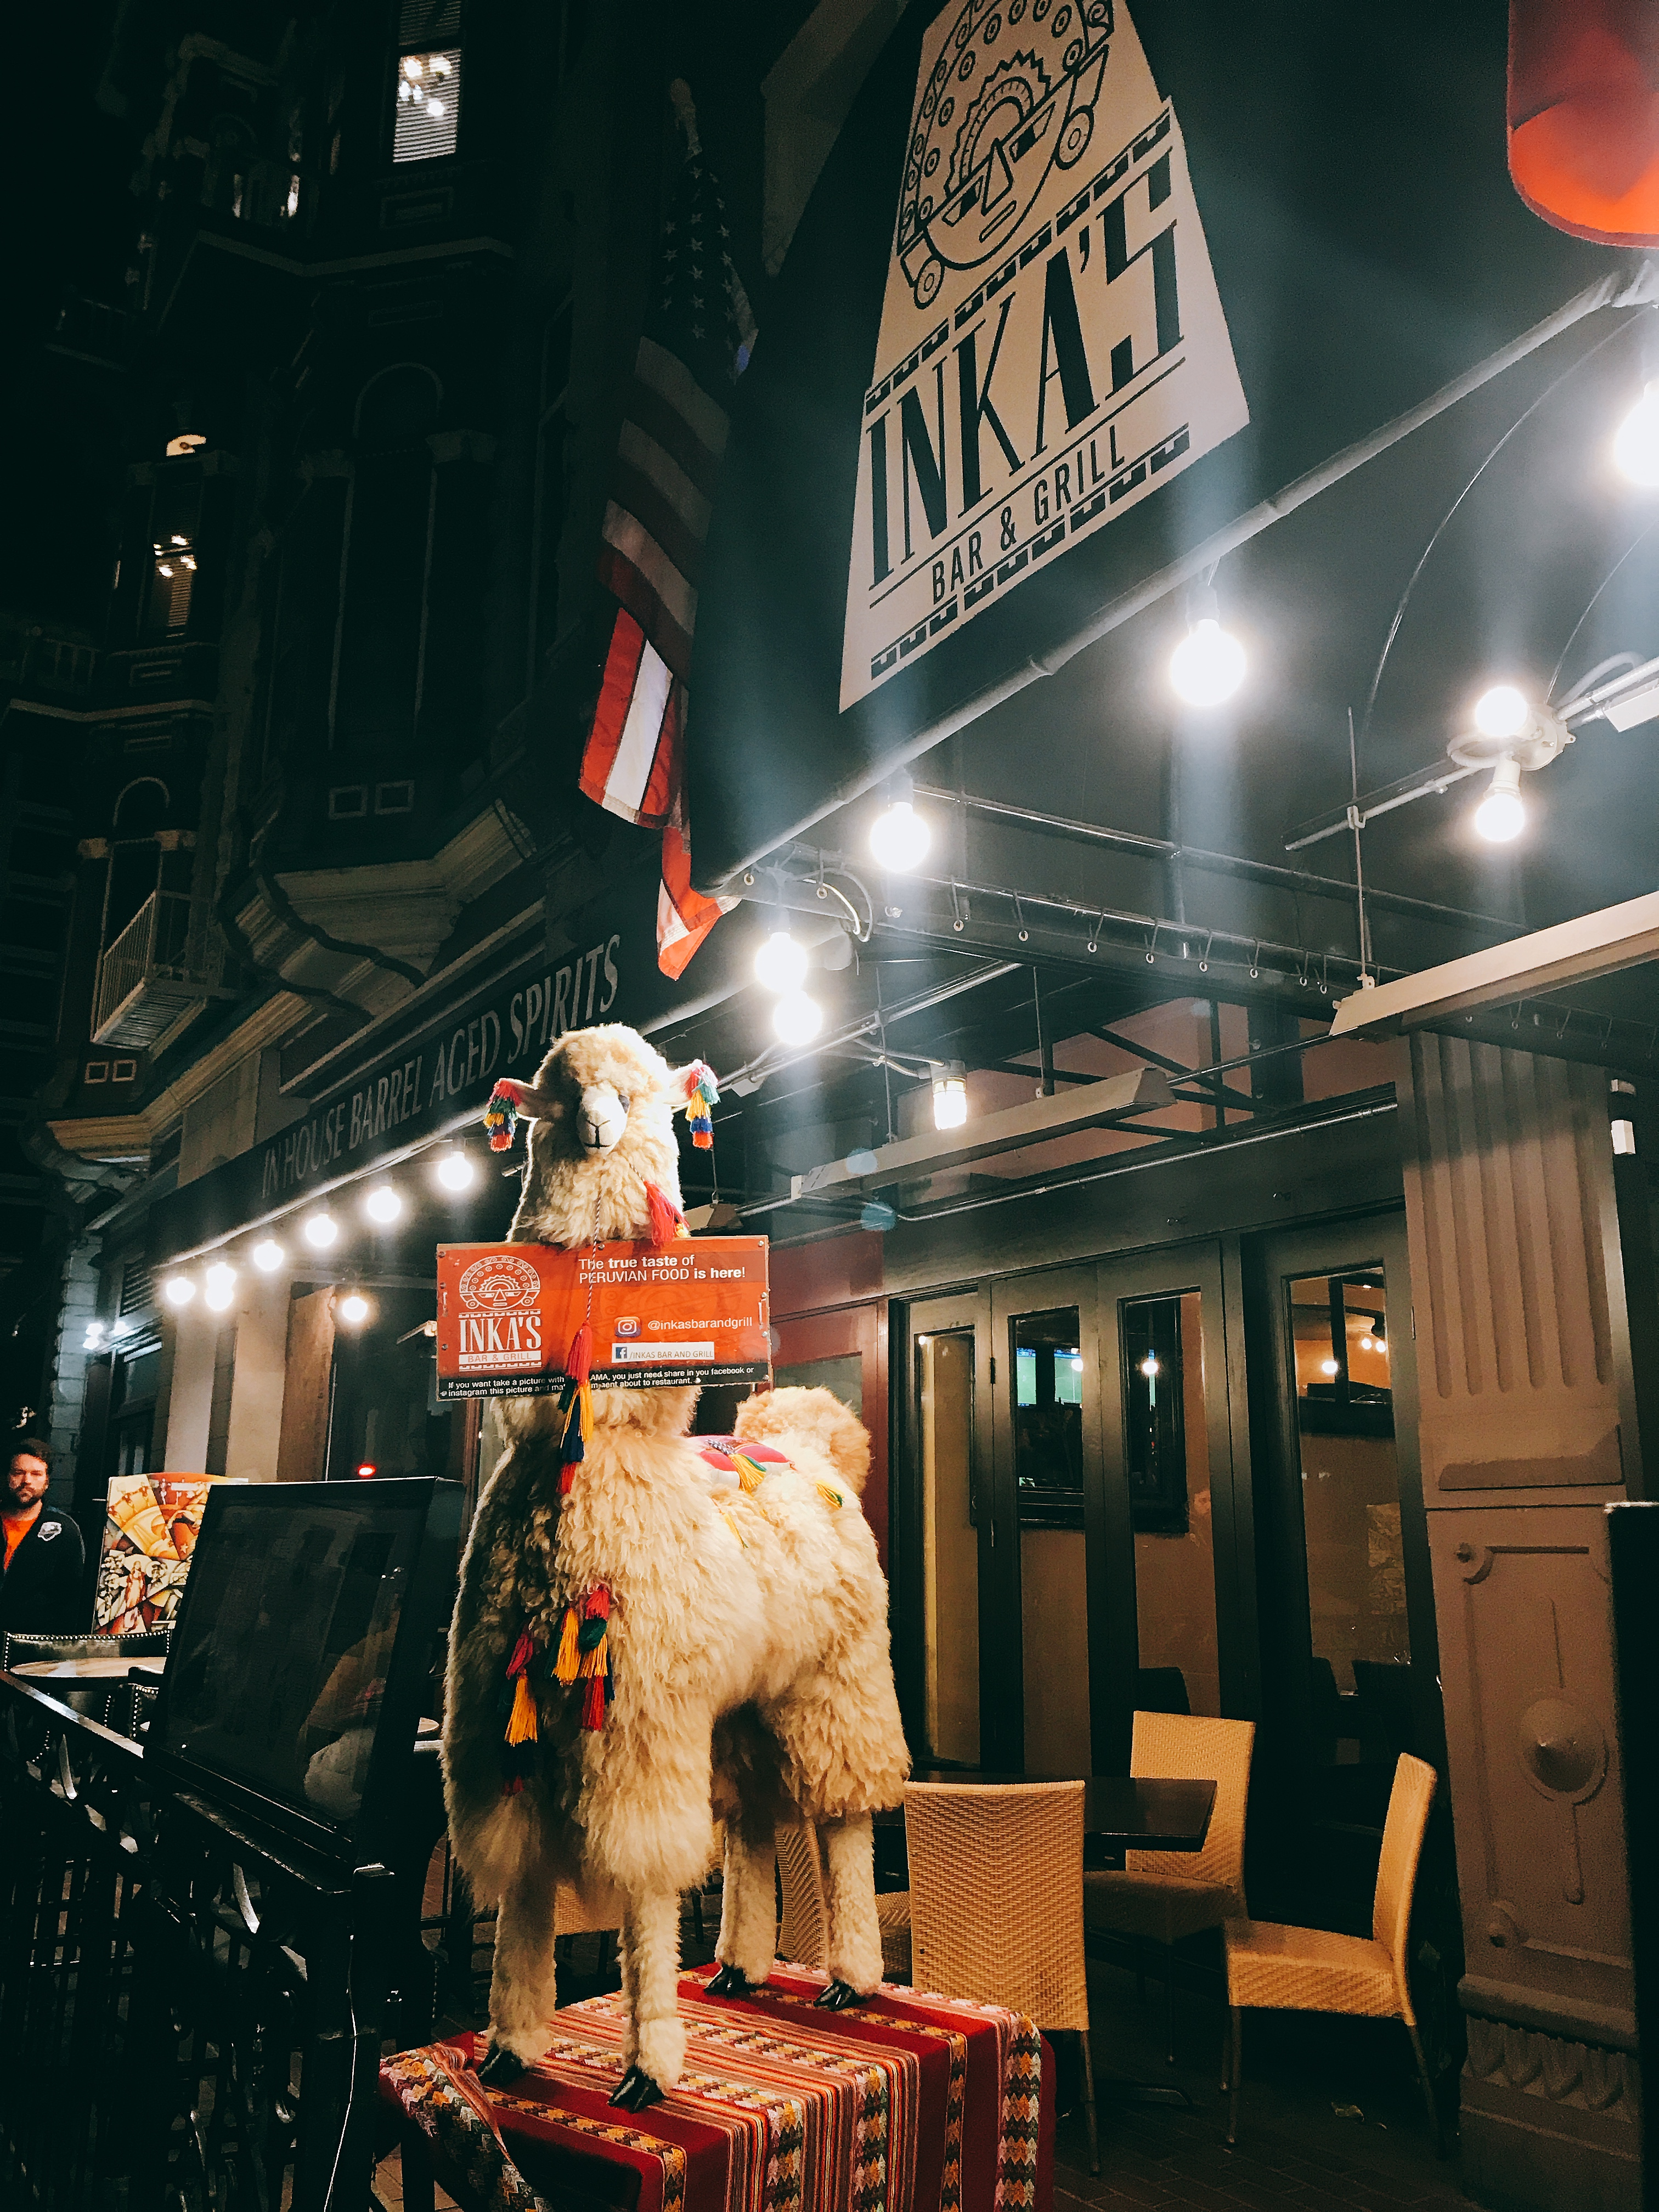 IMG 2010 - One of the Coolest Backpacker Hostel in San Diego!